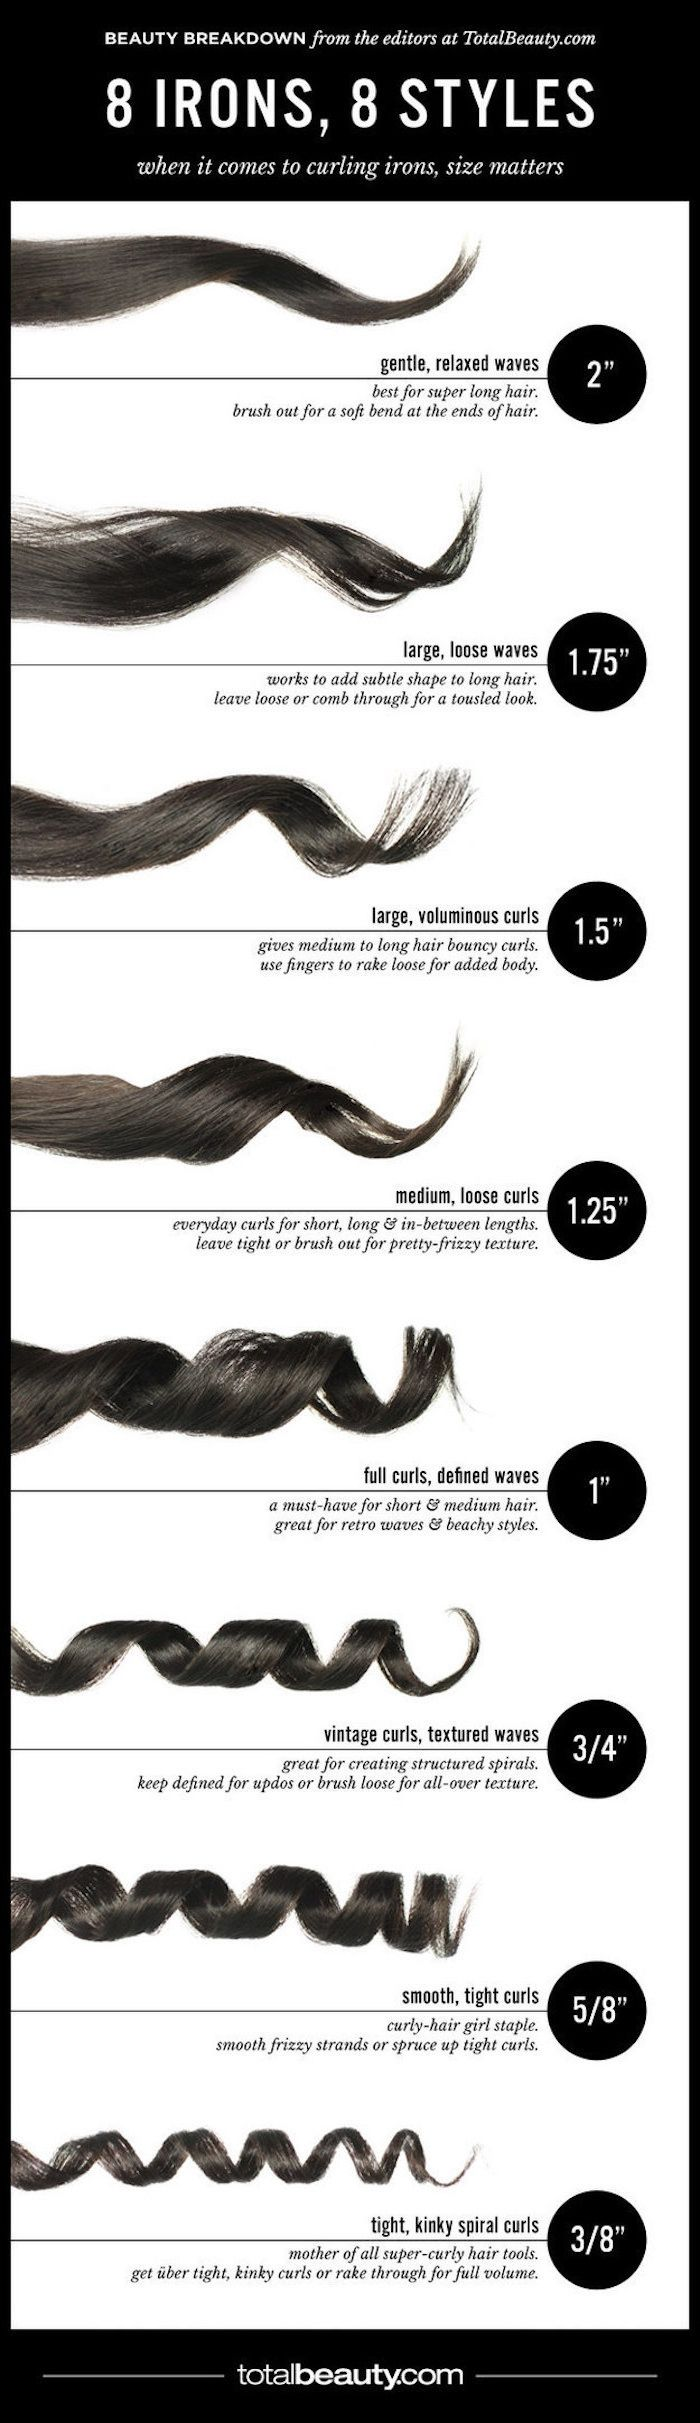 Choosing The Right Curling Iron